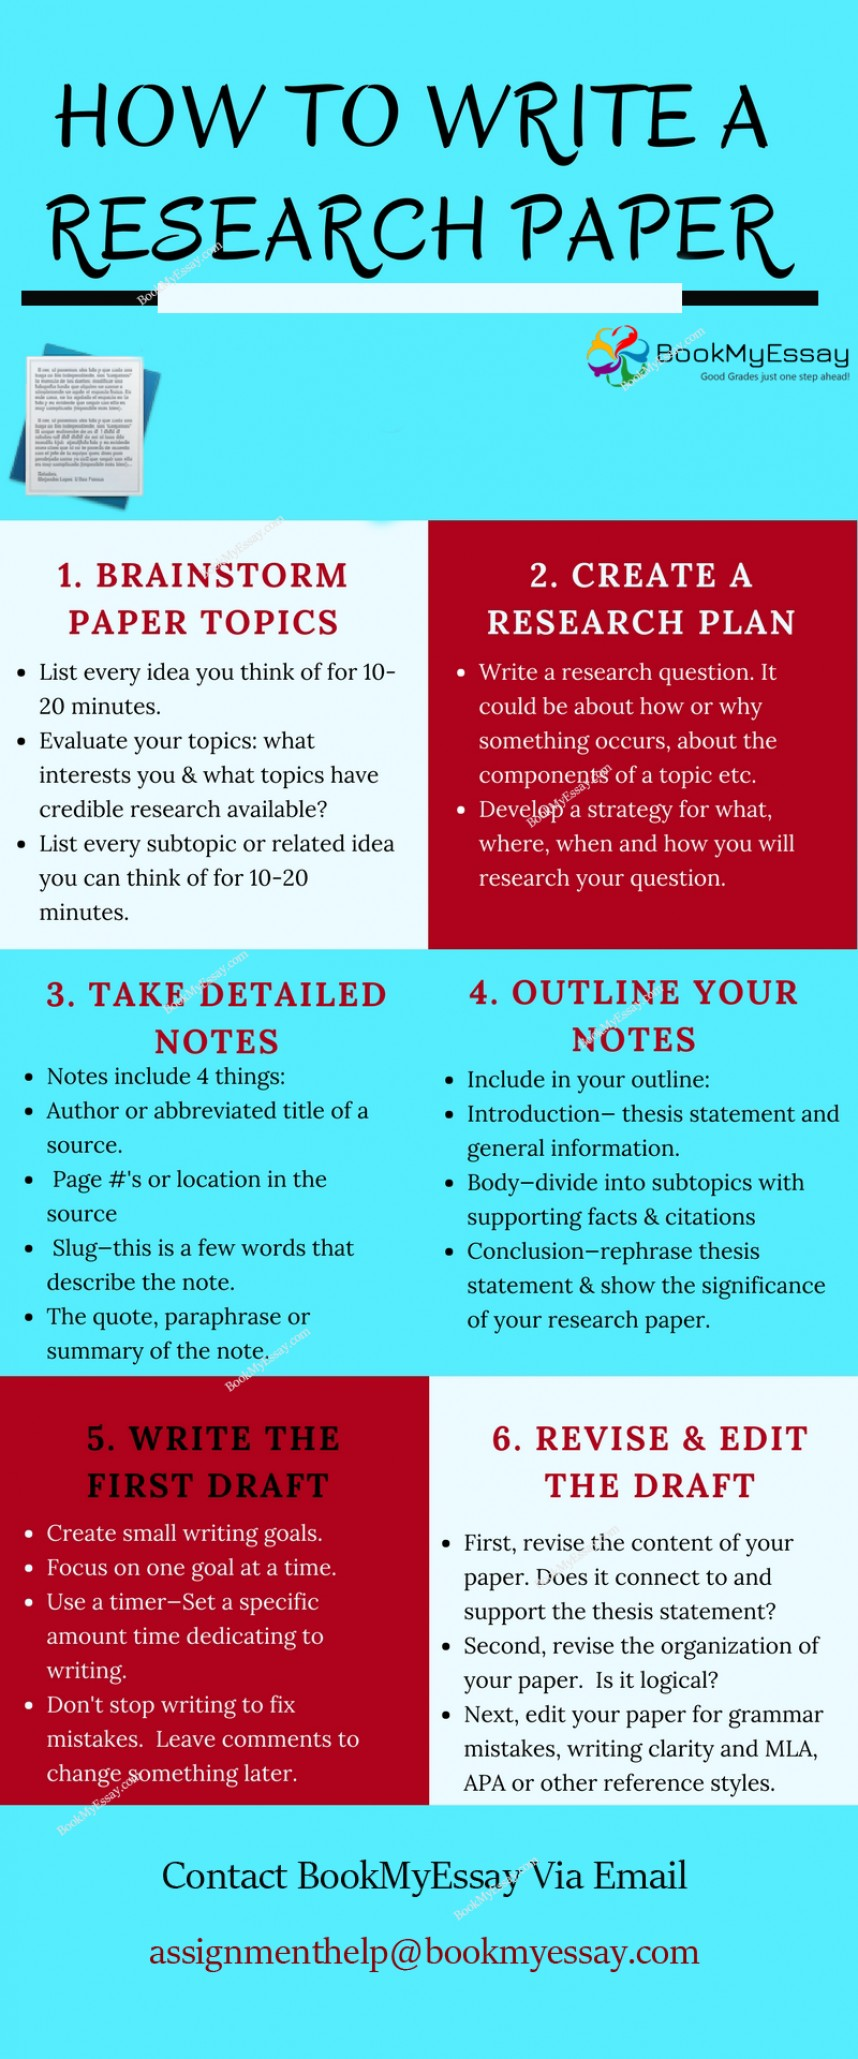 002 Researchs Writing Service Outstanding Research Papers Paper Services In Chennai Mumbai College Reviews 868